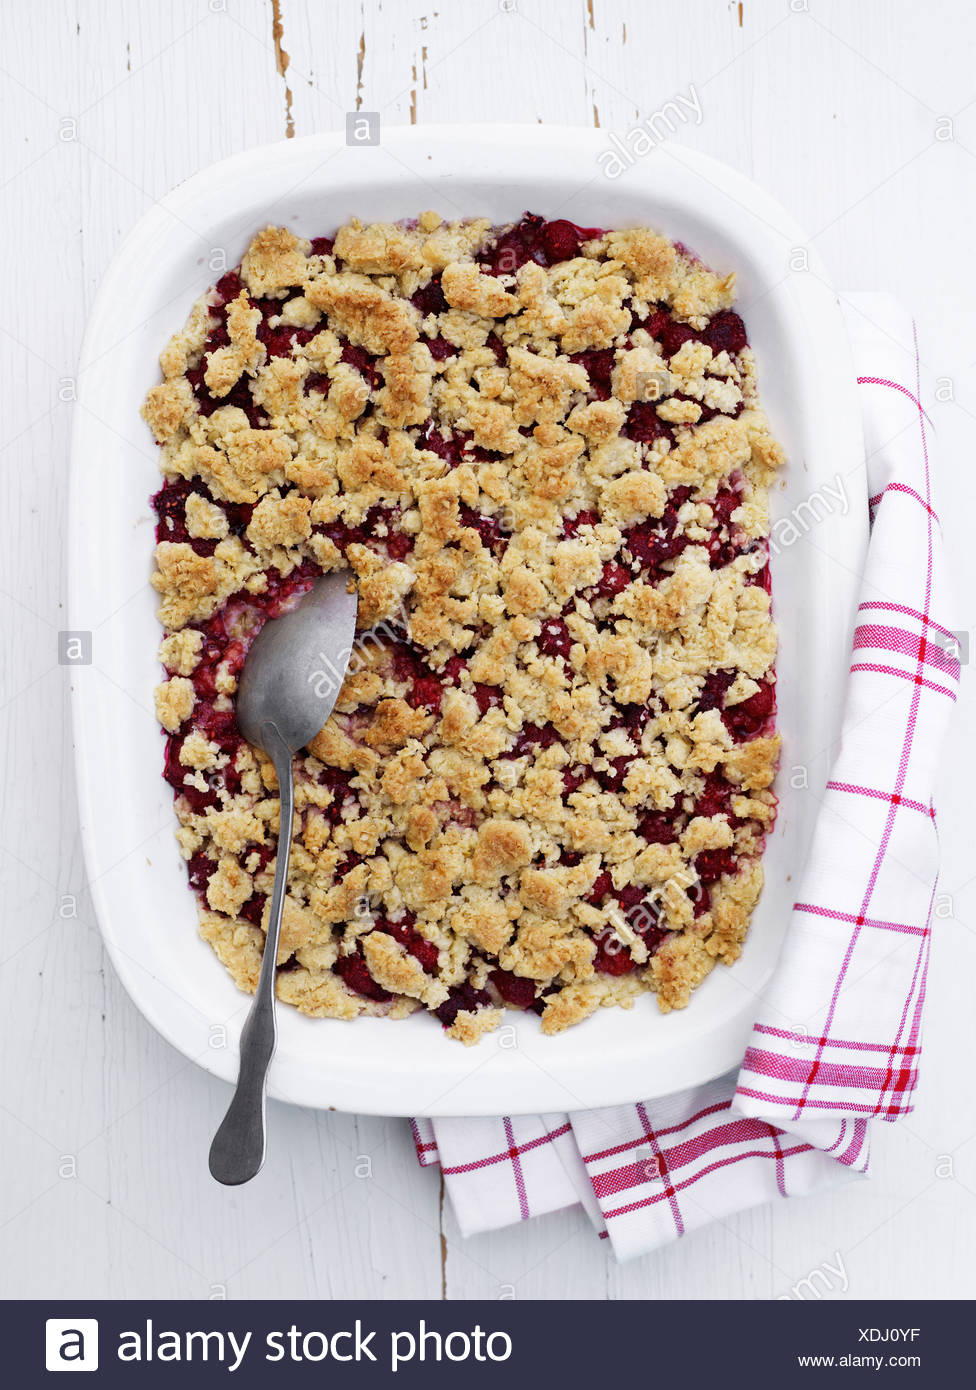 Scandinavia, Sweden, Raspberry pie in bowl, close-up - Stock Image